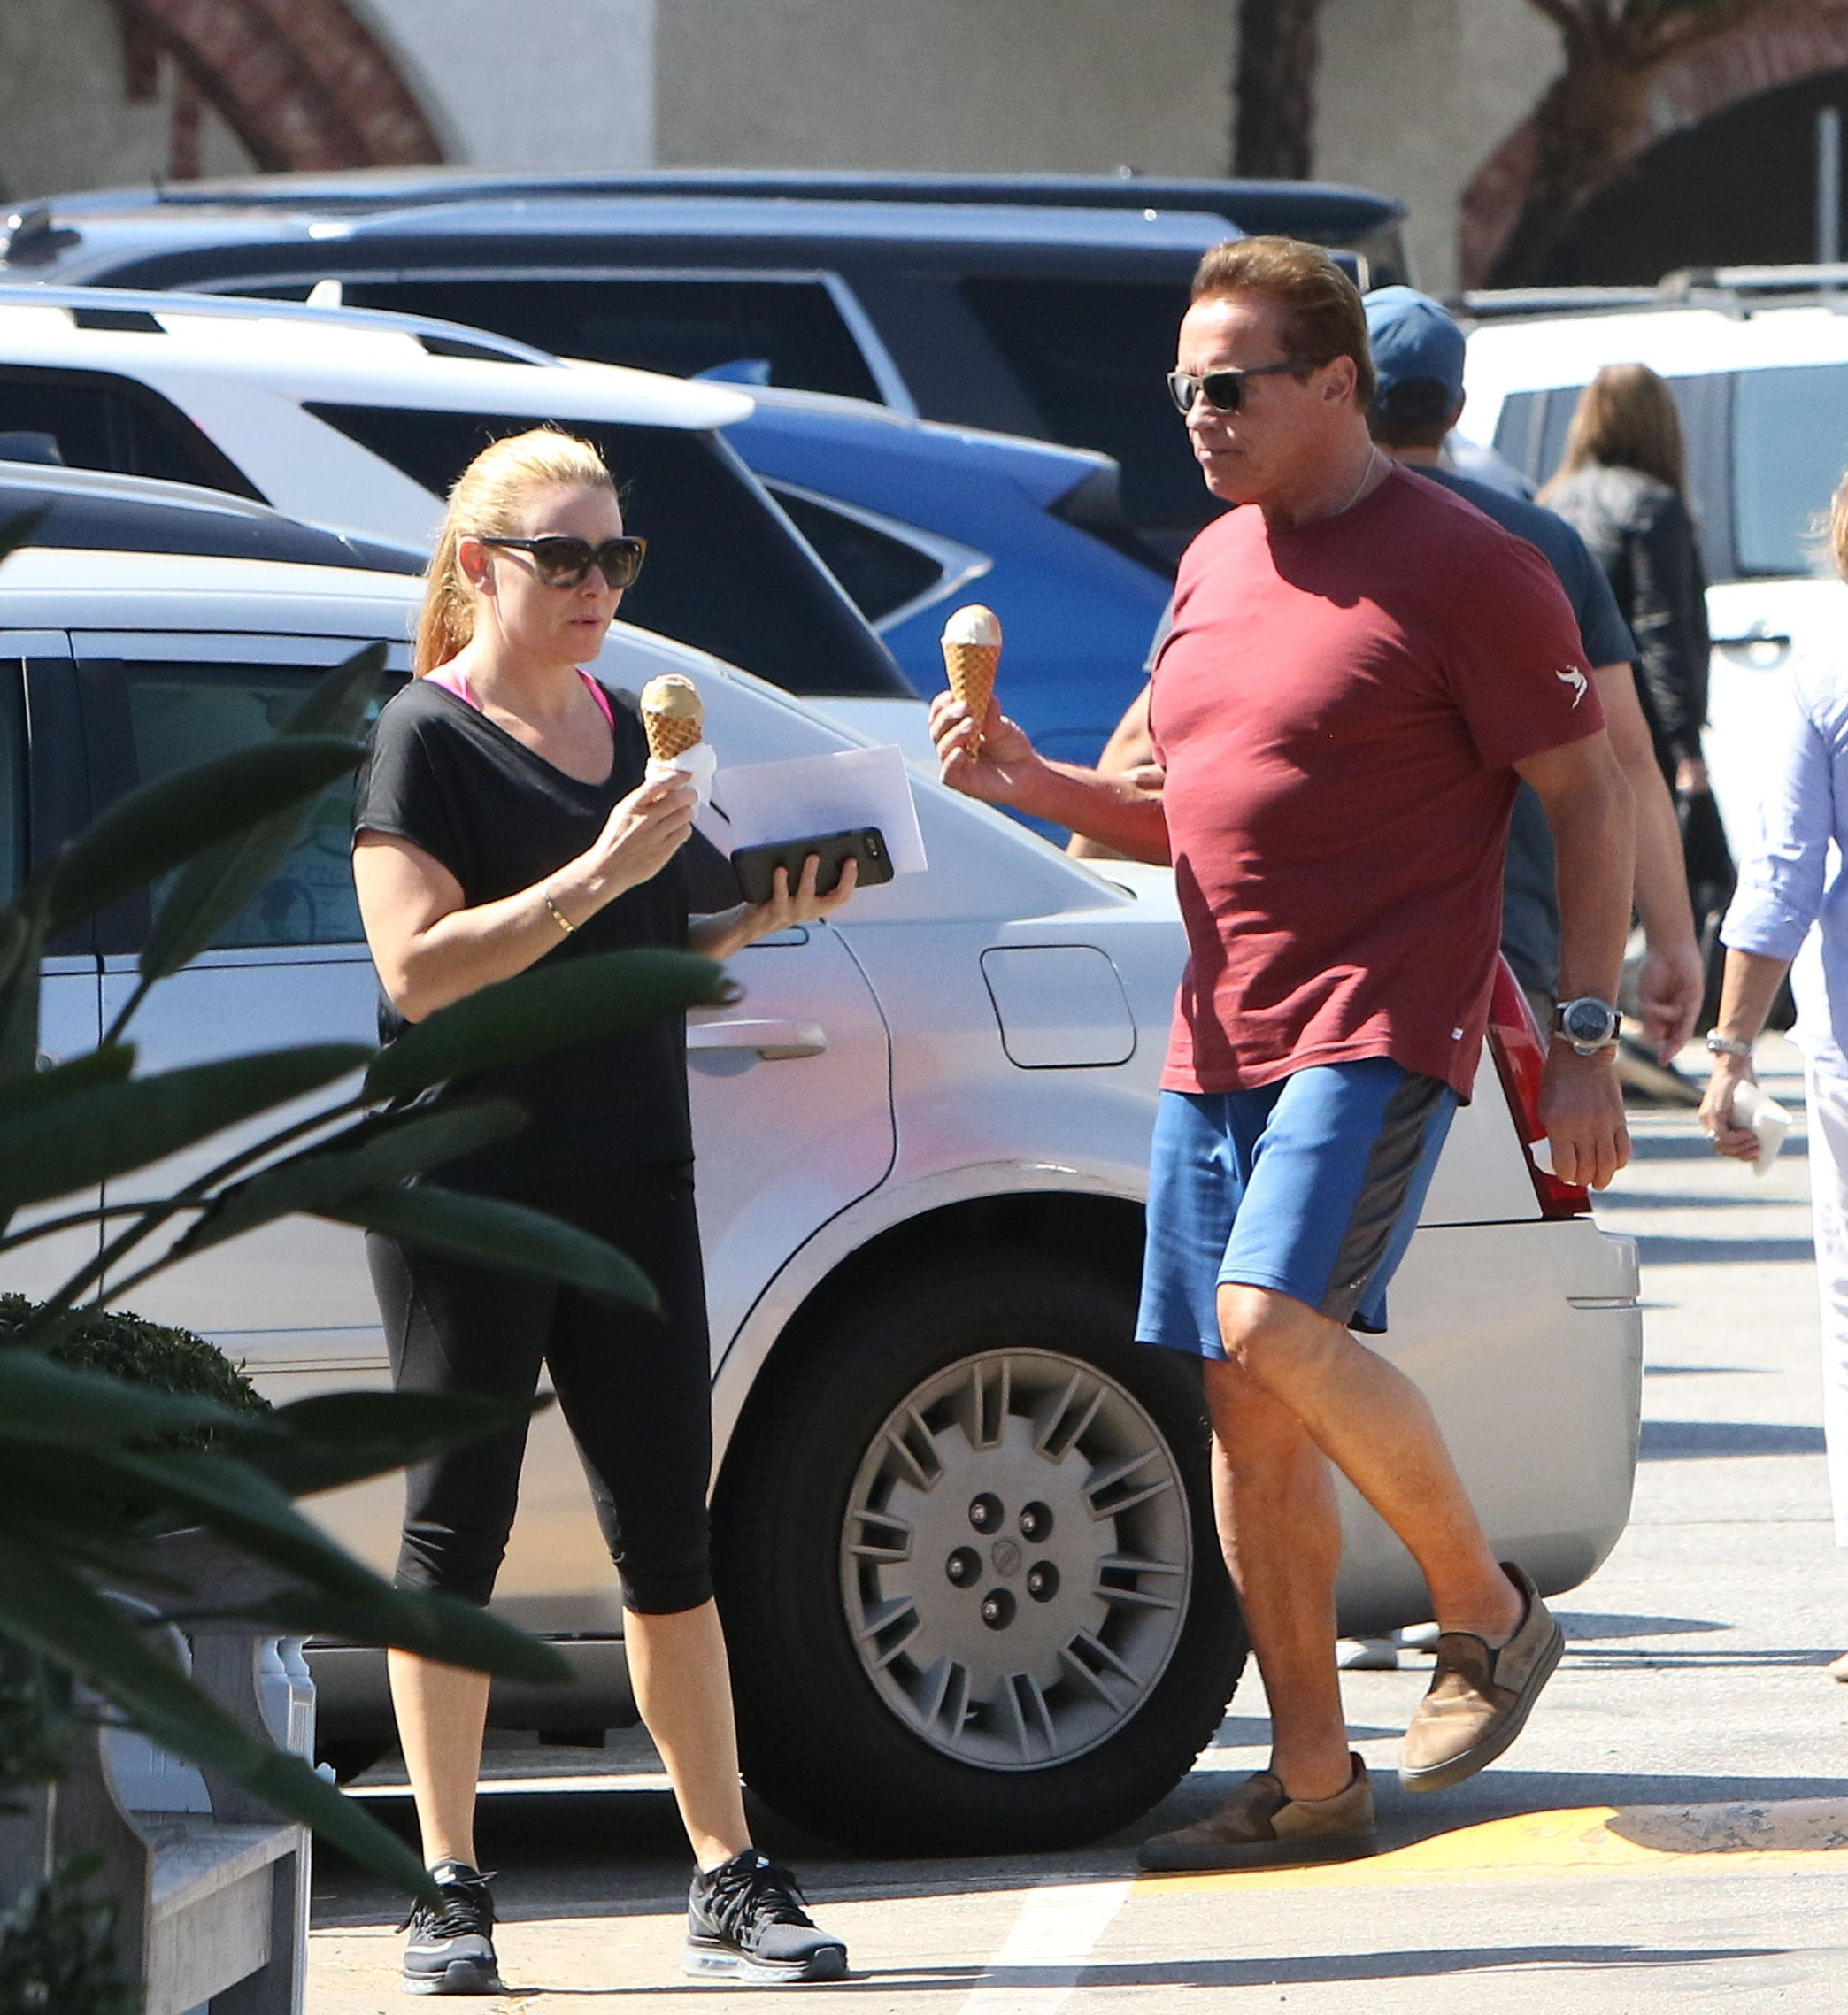 Arnold Schwarzenegger enjoying ice cream with girlfriend of four years, Heather Milligan  in Brentwood, California